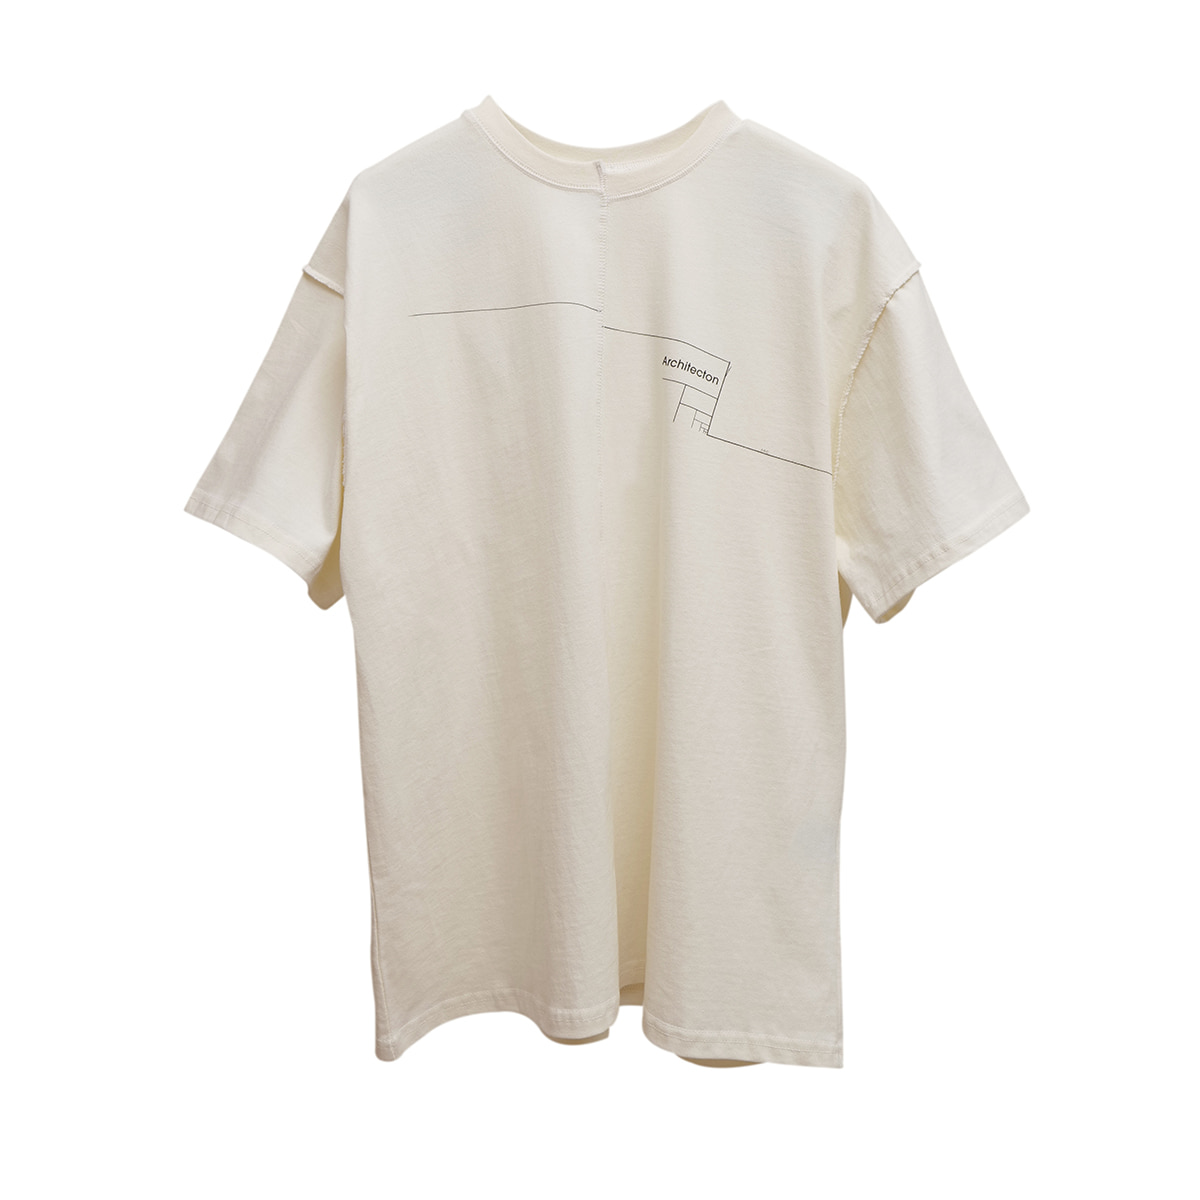 Distorted Architecton T-shirt (ivory)